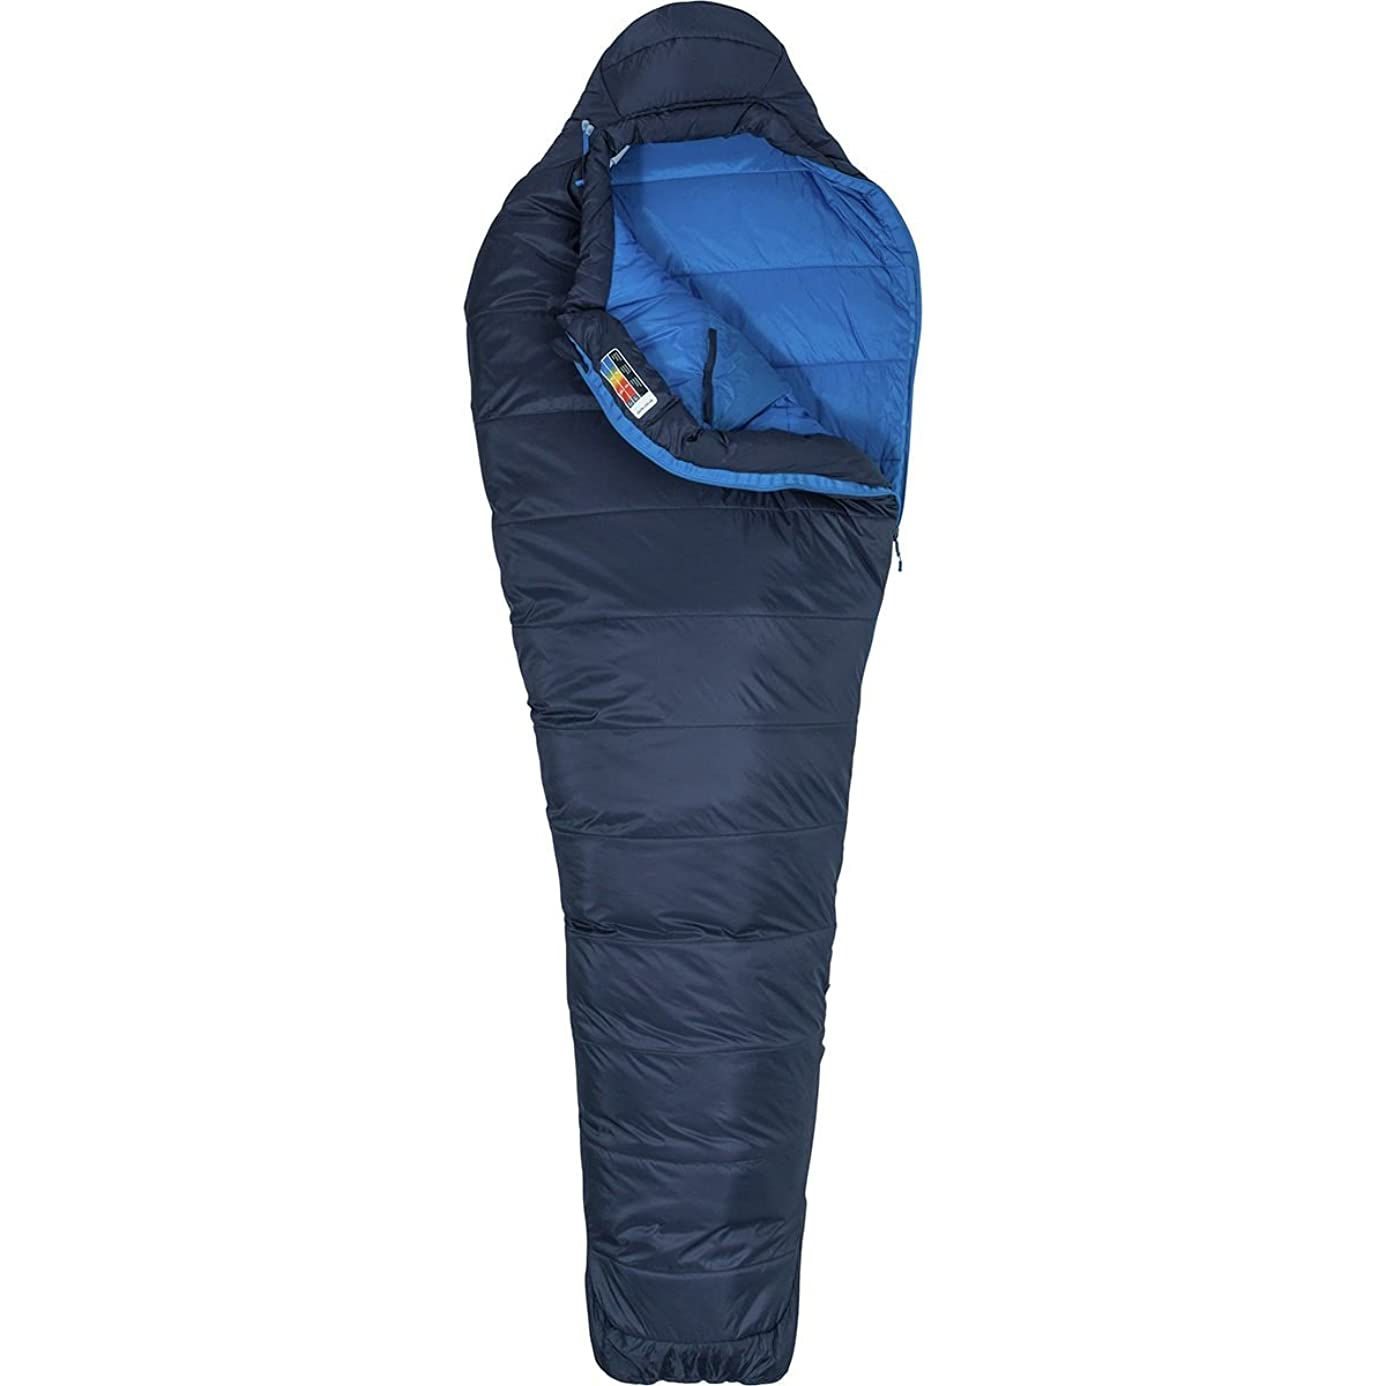 Marmot Ultra Elite 20 Sleeping Bag, Dark Steel/Lakeside, Reg 6ft 0in, 39360-1662-Reg: 6'0